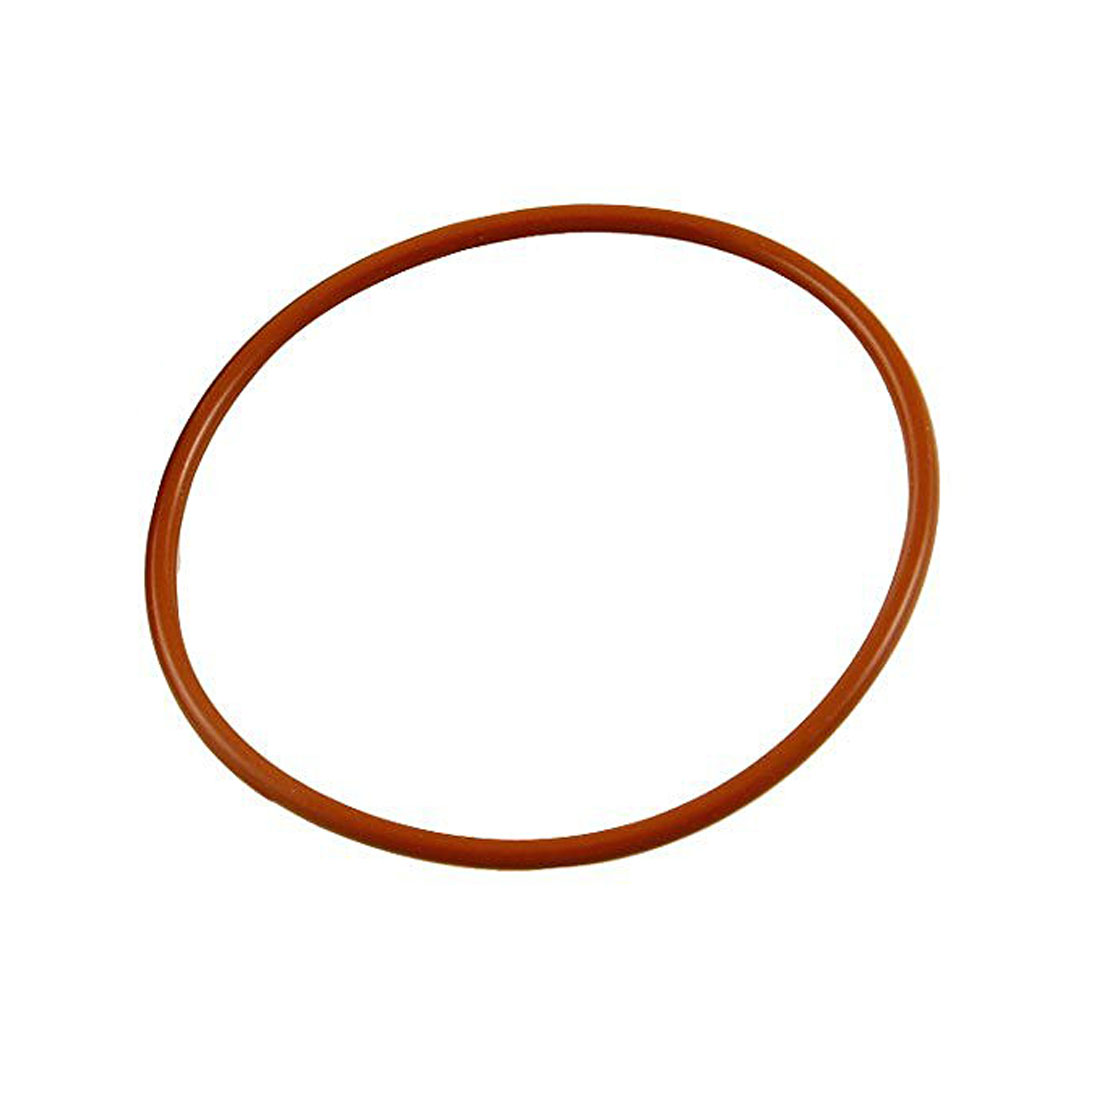 10 pcs industrial silicone o ring seal 55mm x 60mm x bt. Black Bedroom Furniture Sets. Home Design Ideas